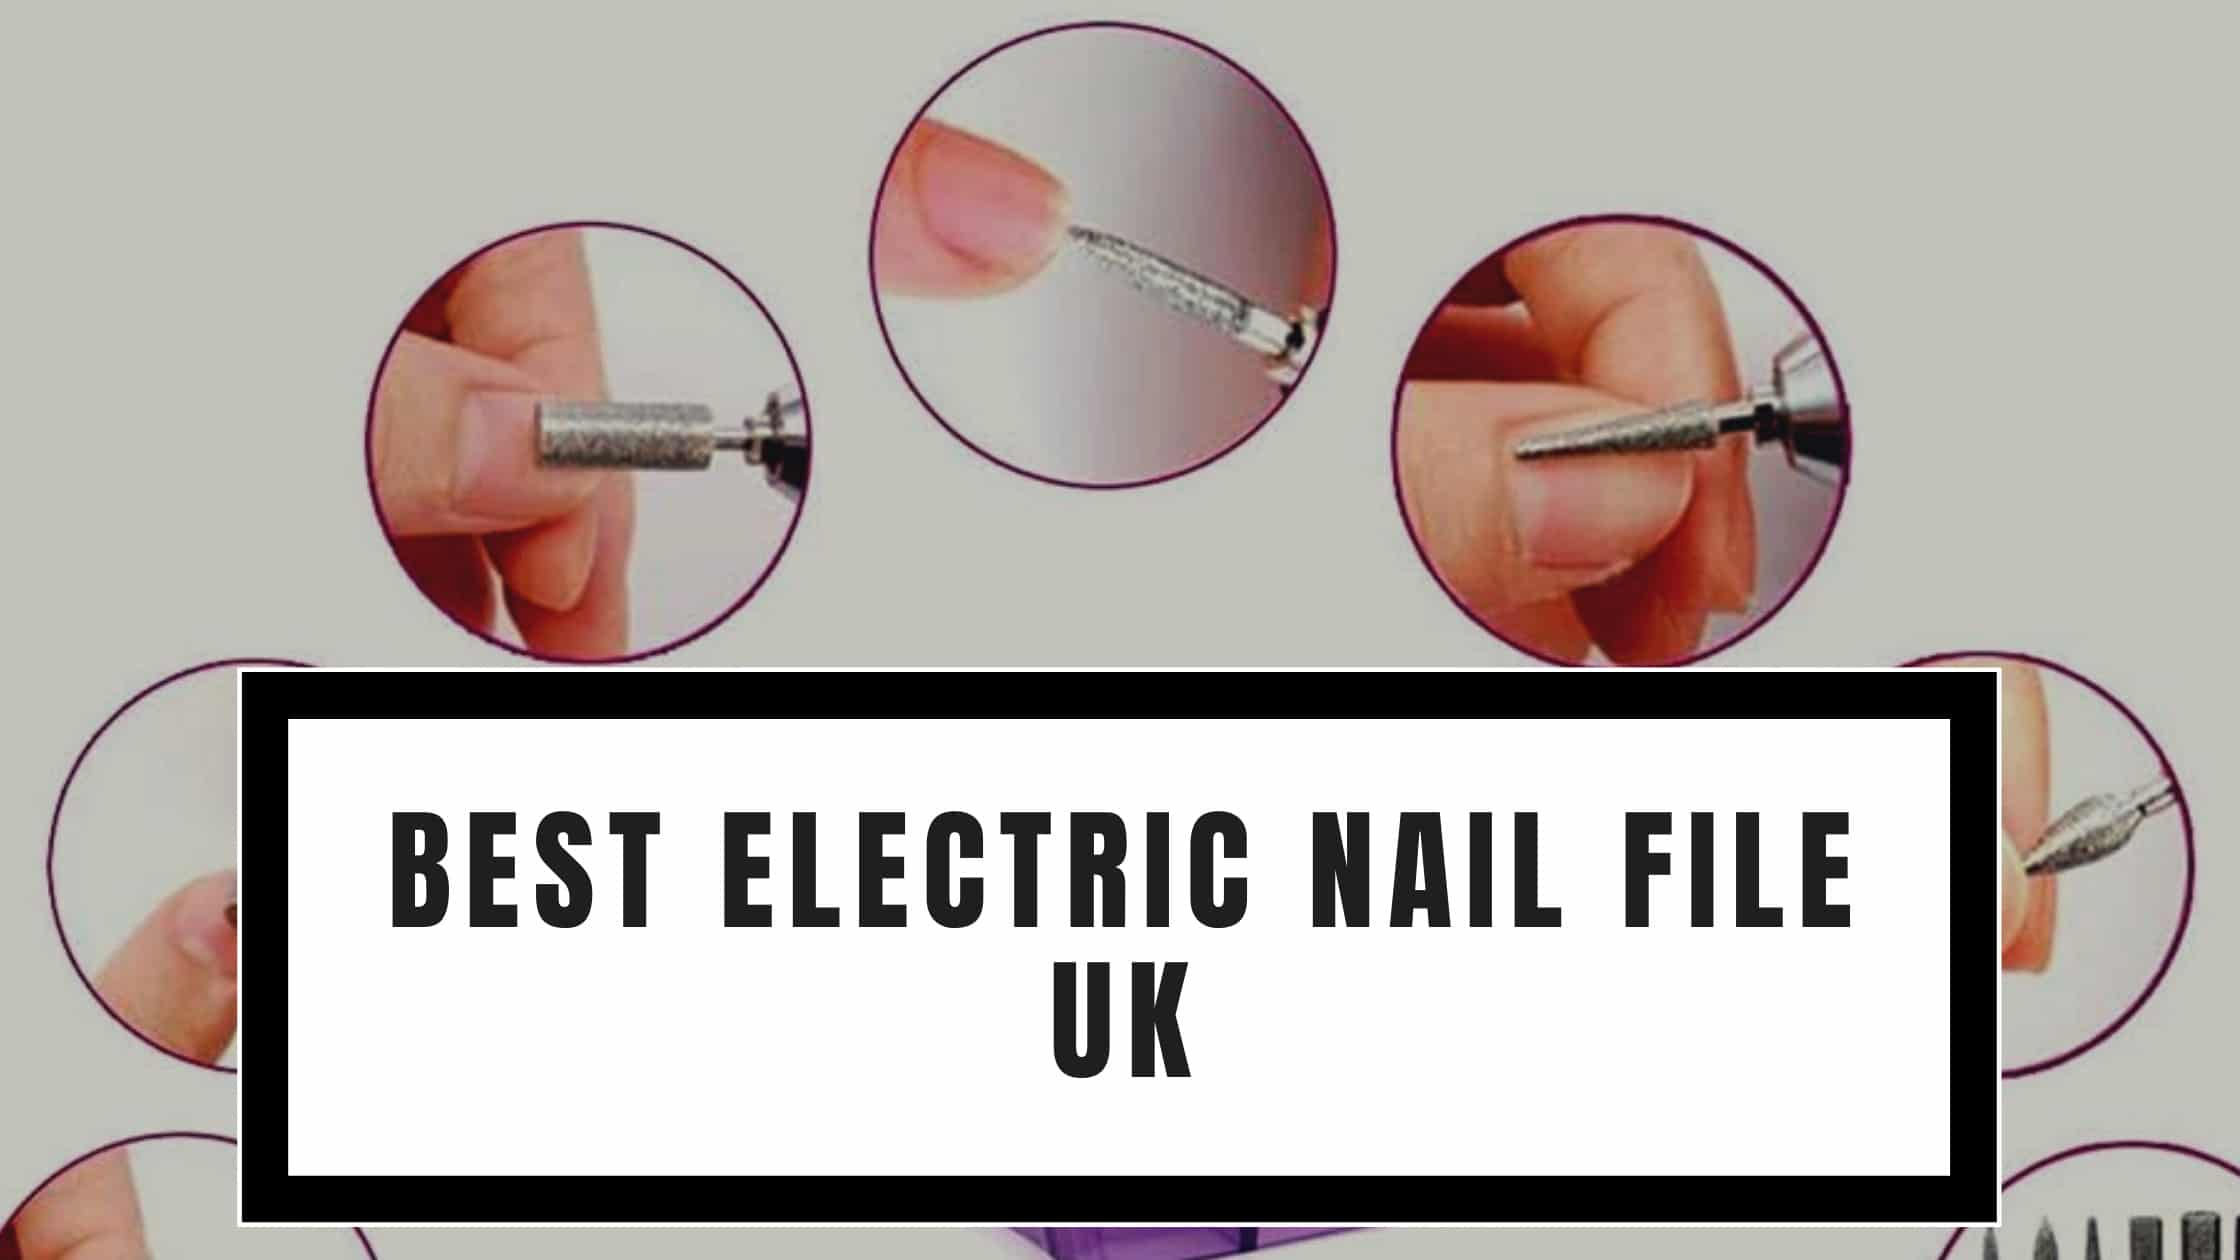 Best Electric Nail File UK